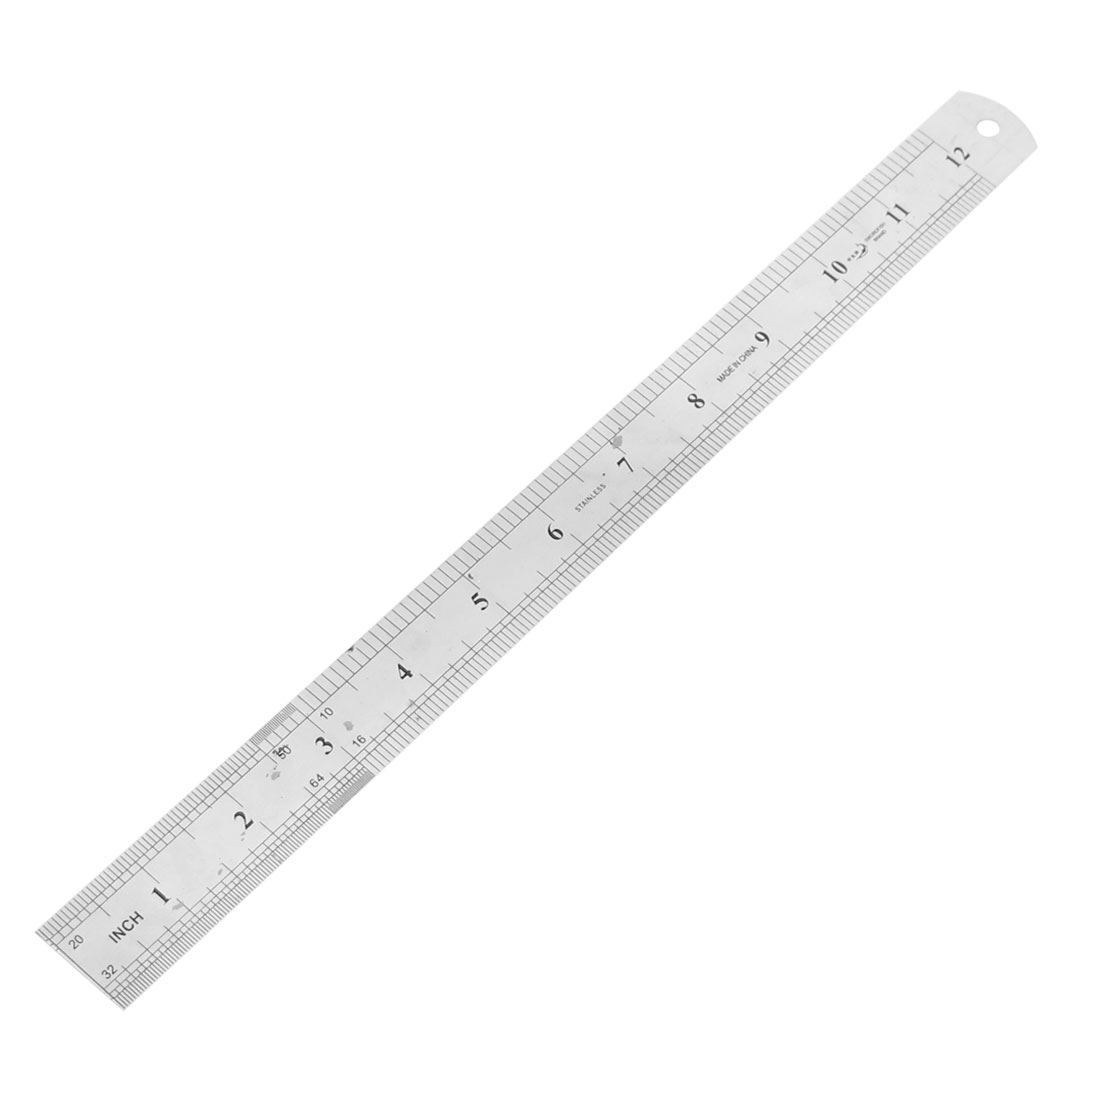 School Office Measurement Tool 2 Sides Metal Straight Ruler Rule 30cm/12""